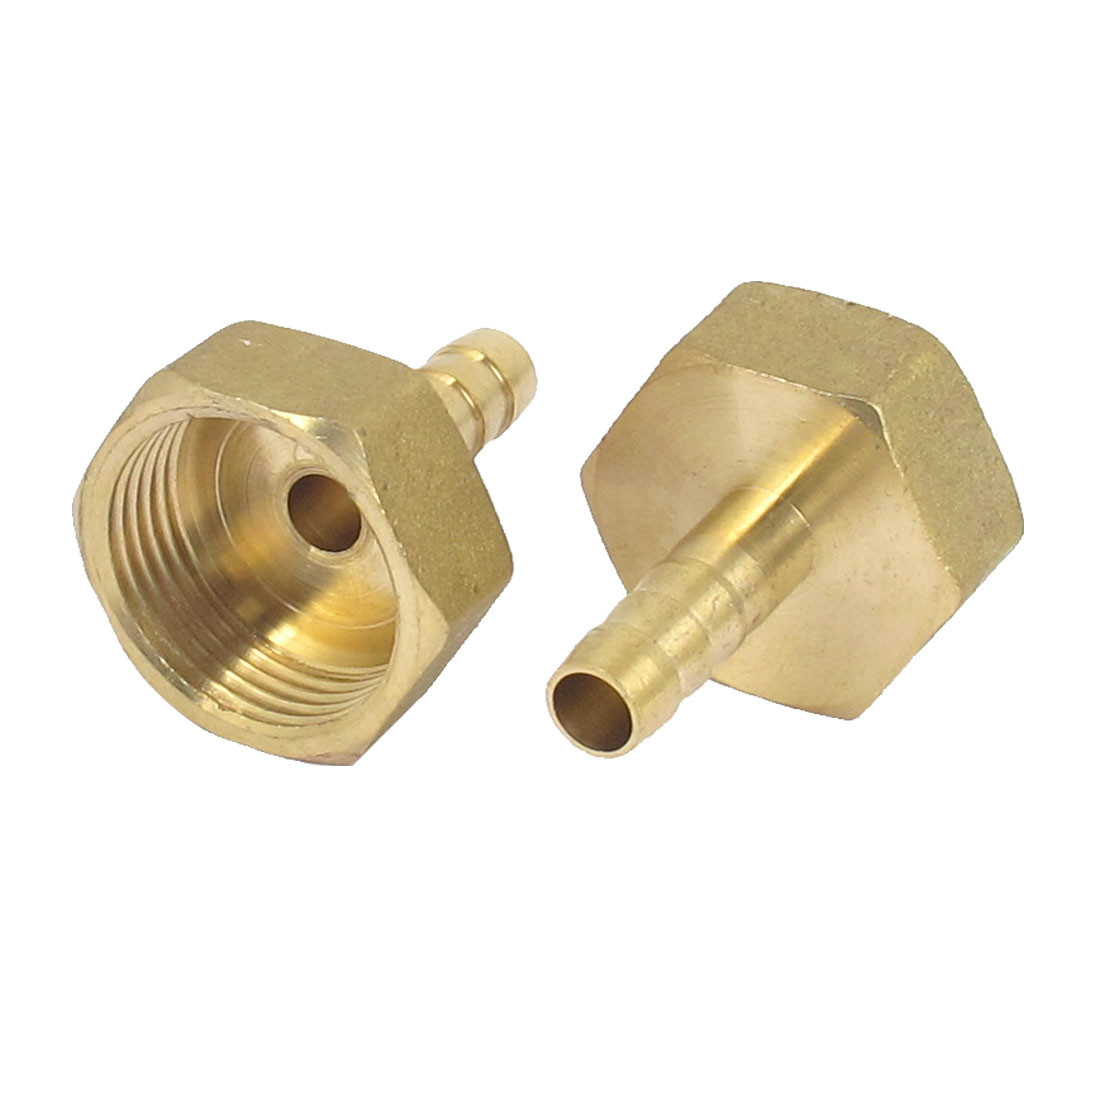 Brass 8mm Hose Barb 3/4BSP Female Thread Quick Joint Connector Adapter 2PCS